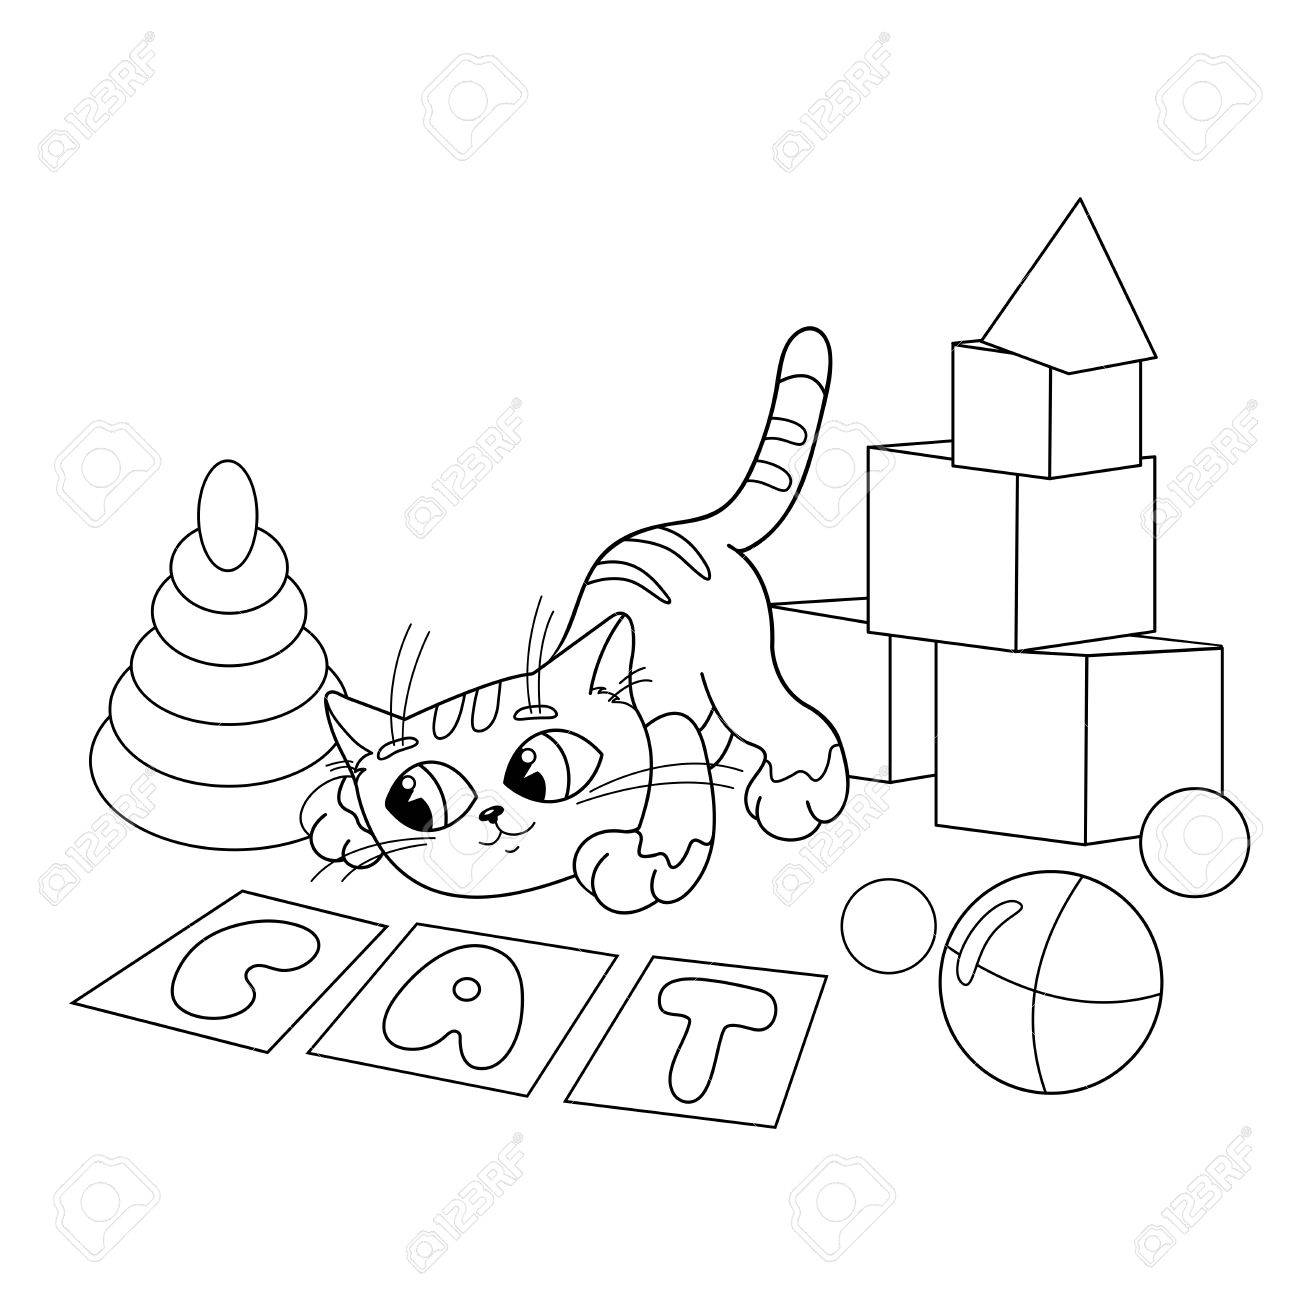 coloring page outline of cartoon cat playing with toys coloring